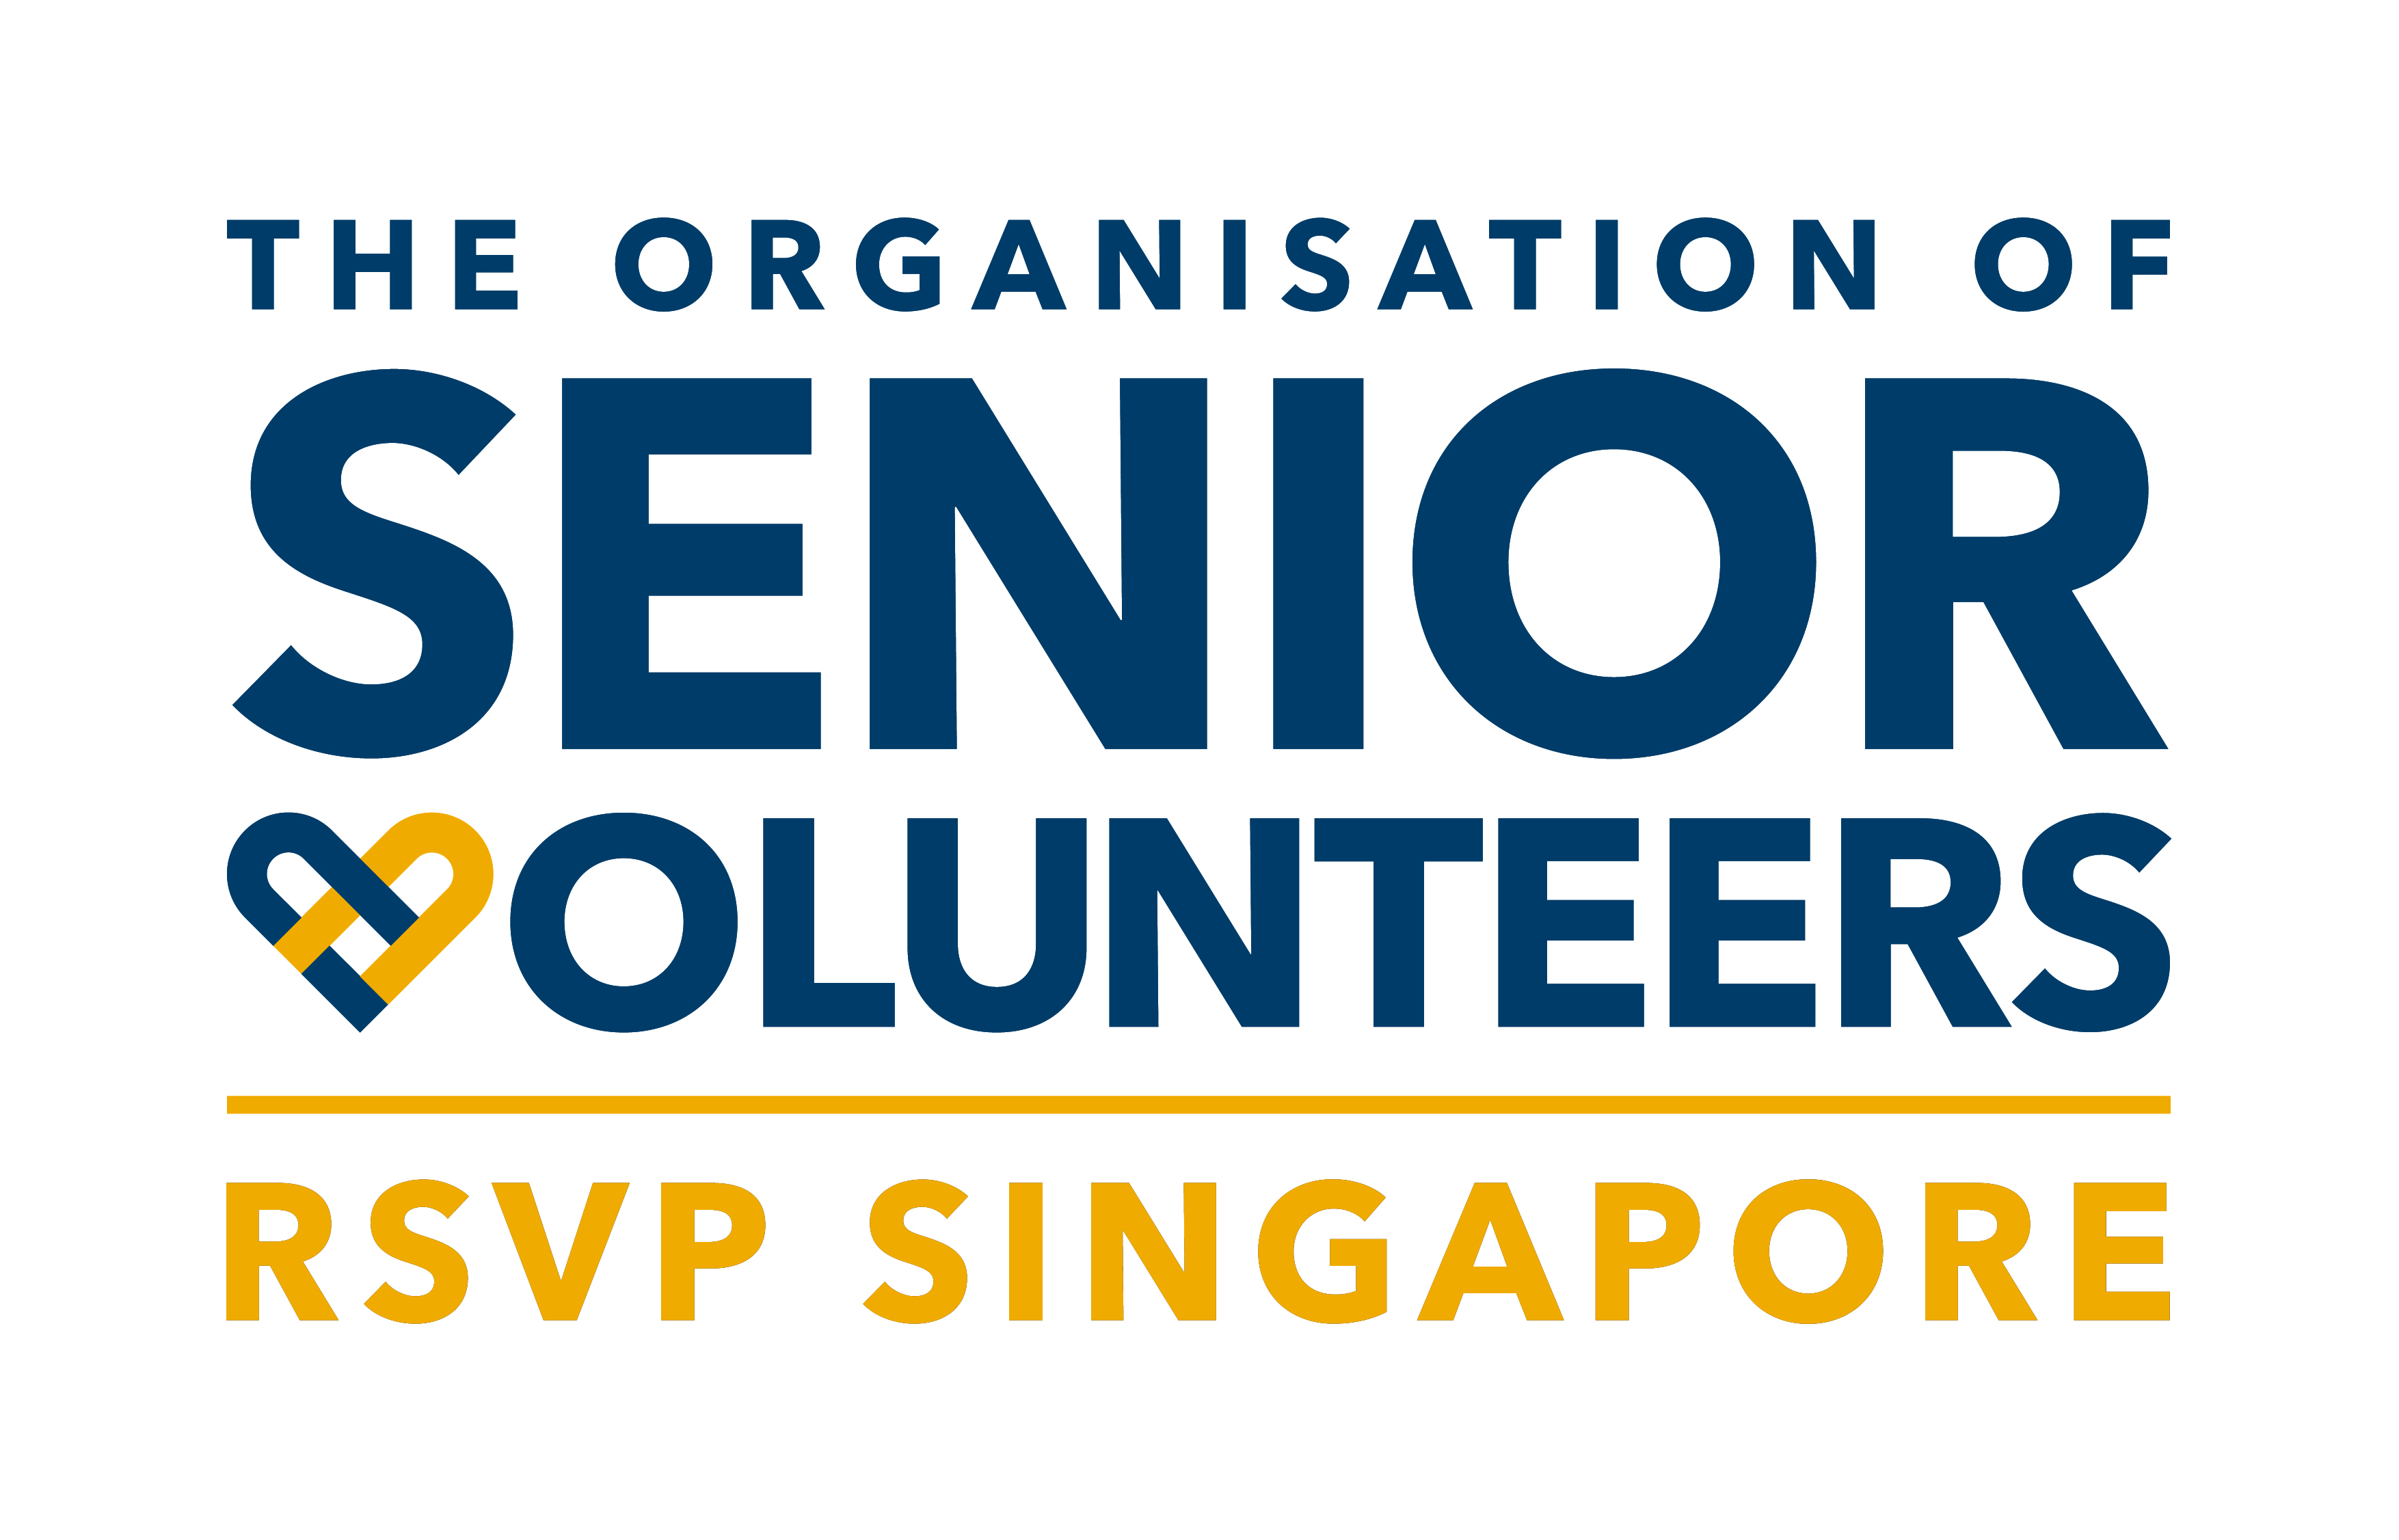 RSVP Singapore The Organisation of Senior Volunteers